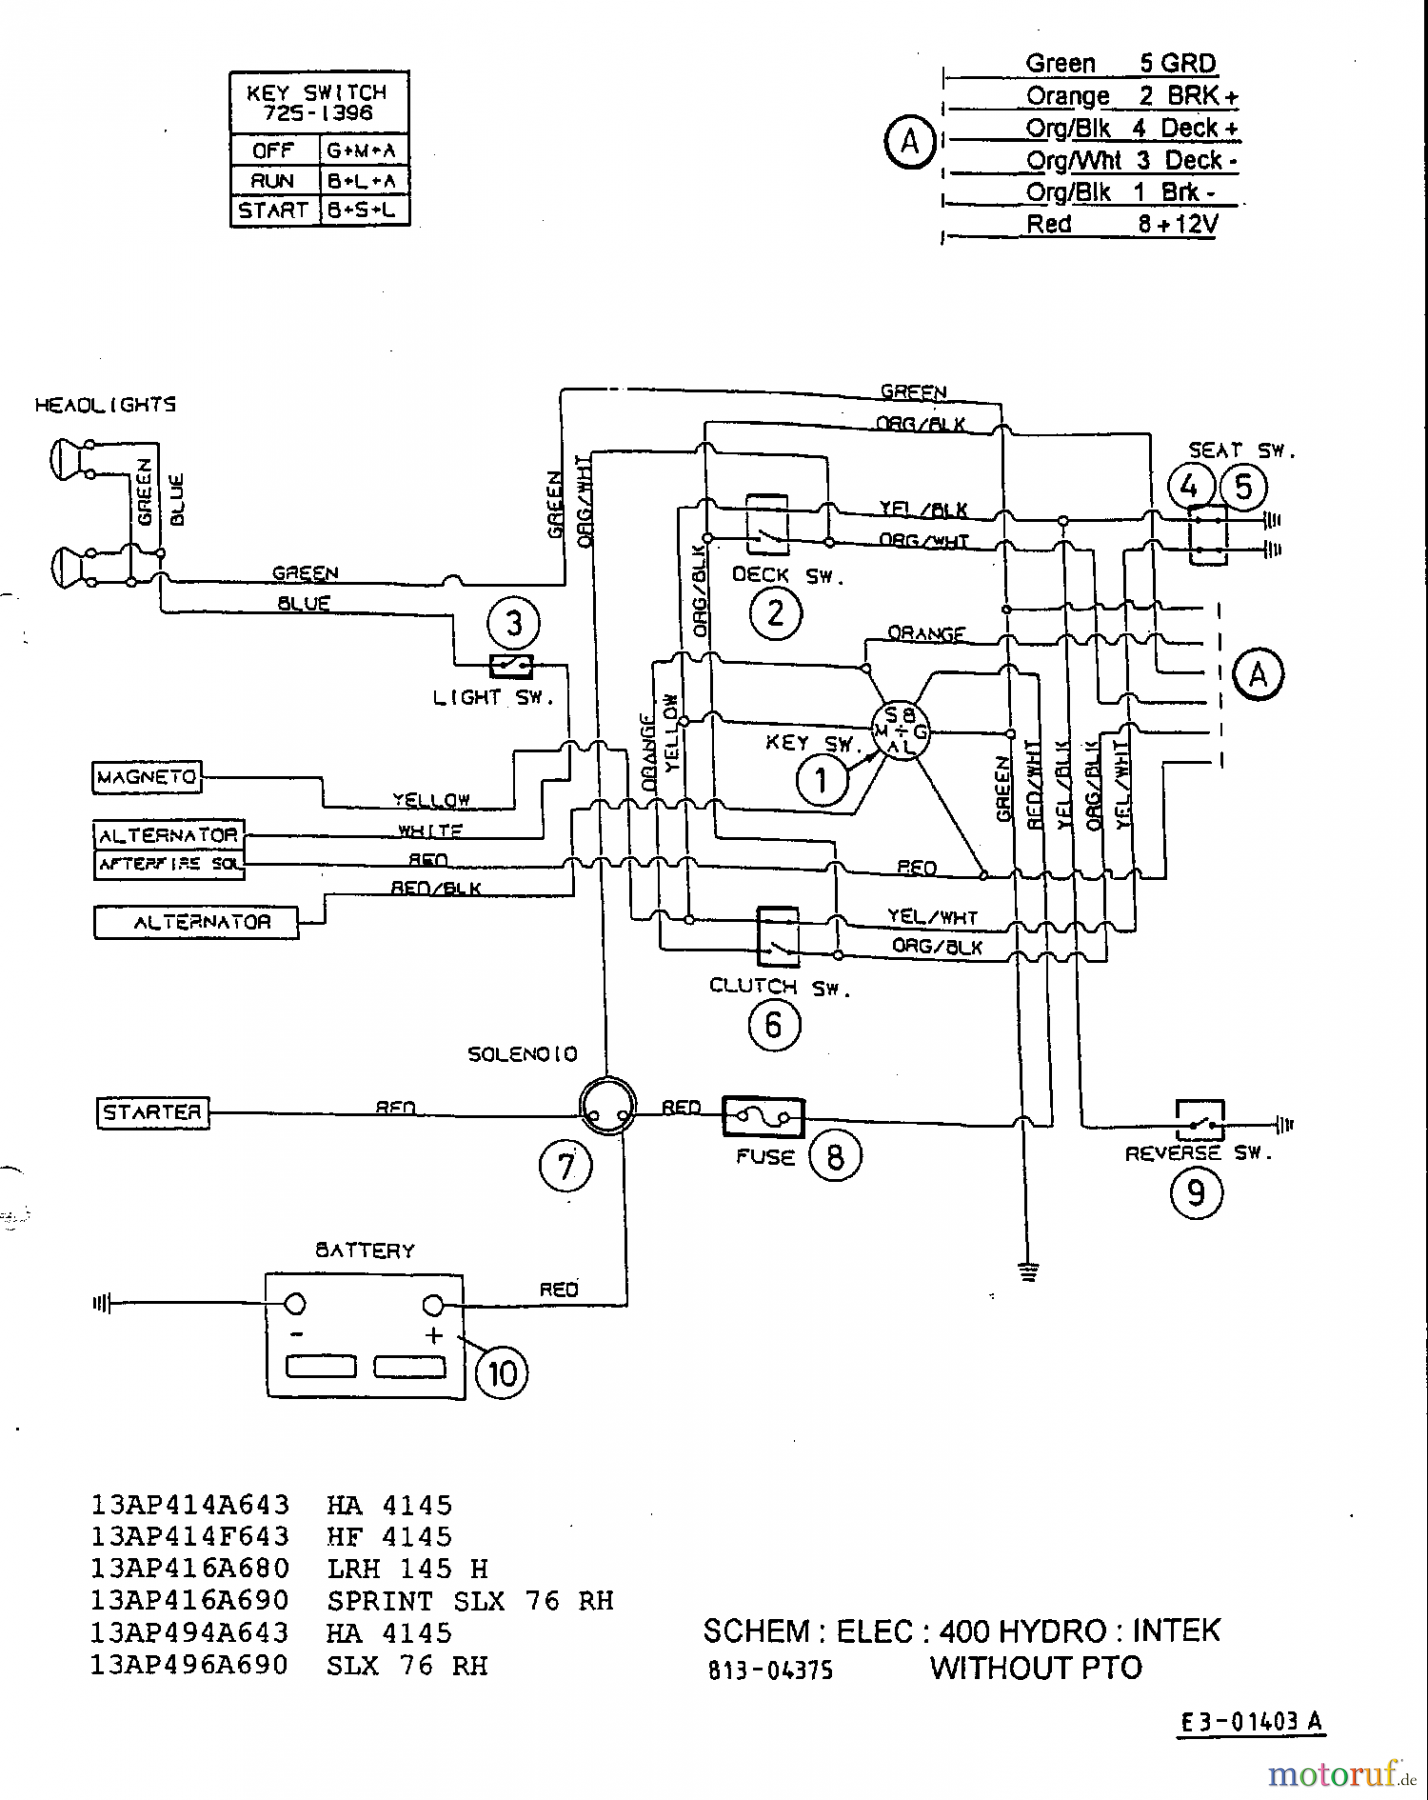 mtd riding mower wiring diagram with yard machine on mtd ride on rh pinterest com mtd lawn mower electrical diagram mtd ride on mower wiring diagram